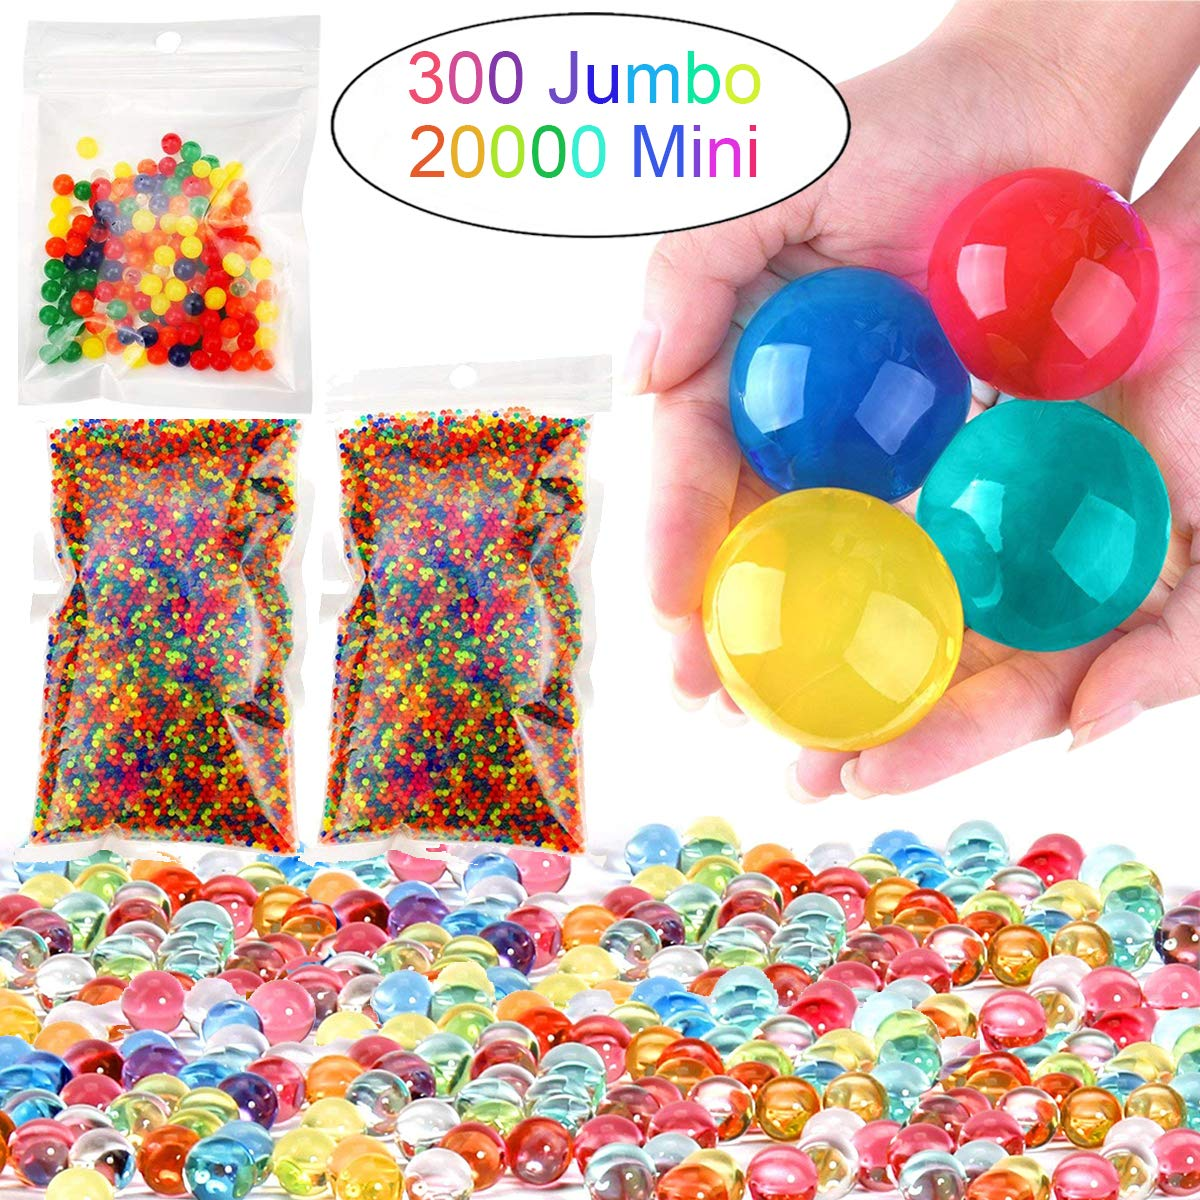 Leeche Non Toxic Water Beads Kit 300pcs Jumbo /& 20000 Small Gel Beads for Kids-Value Package Sensory Toys and Decoration